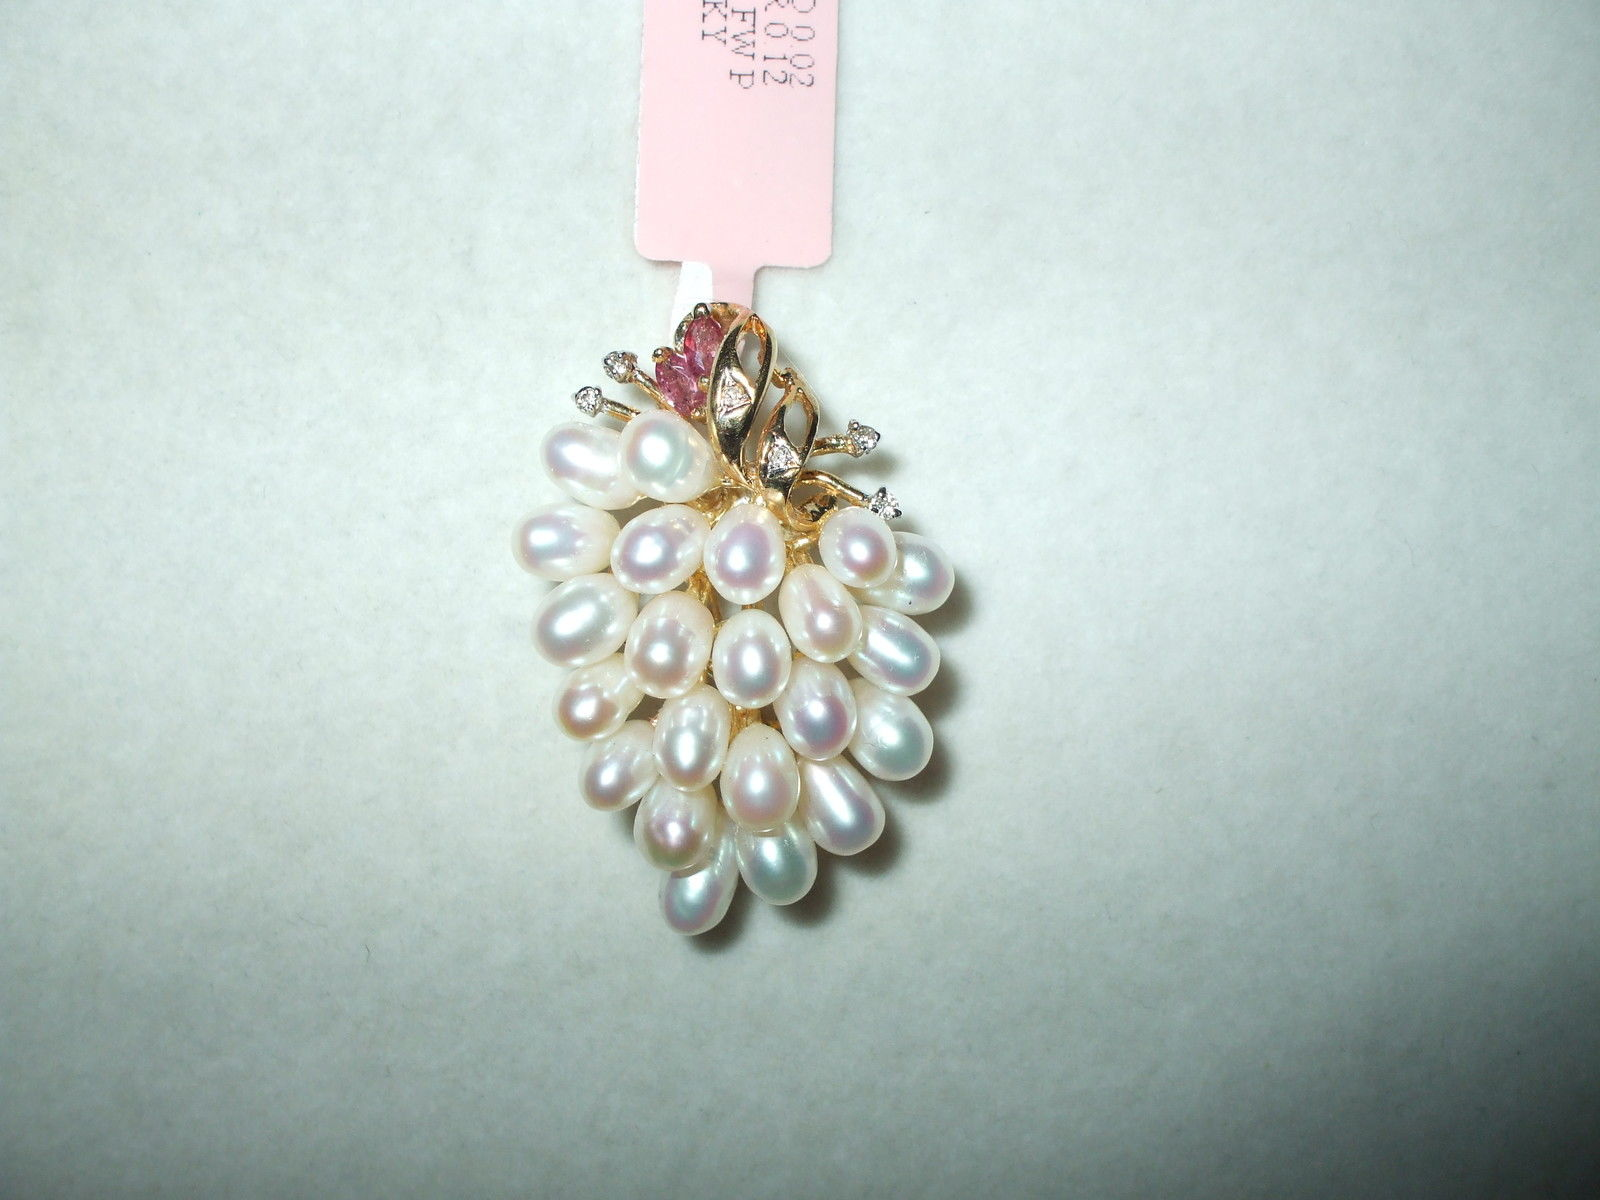 Genuine Freshwater Pearl, Ruby & Diamond Pin 14K yellow gold $1400